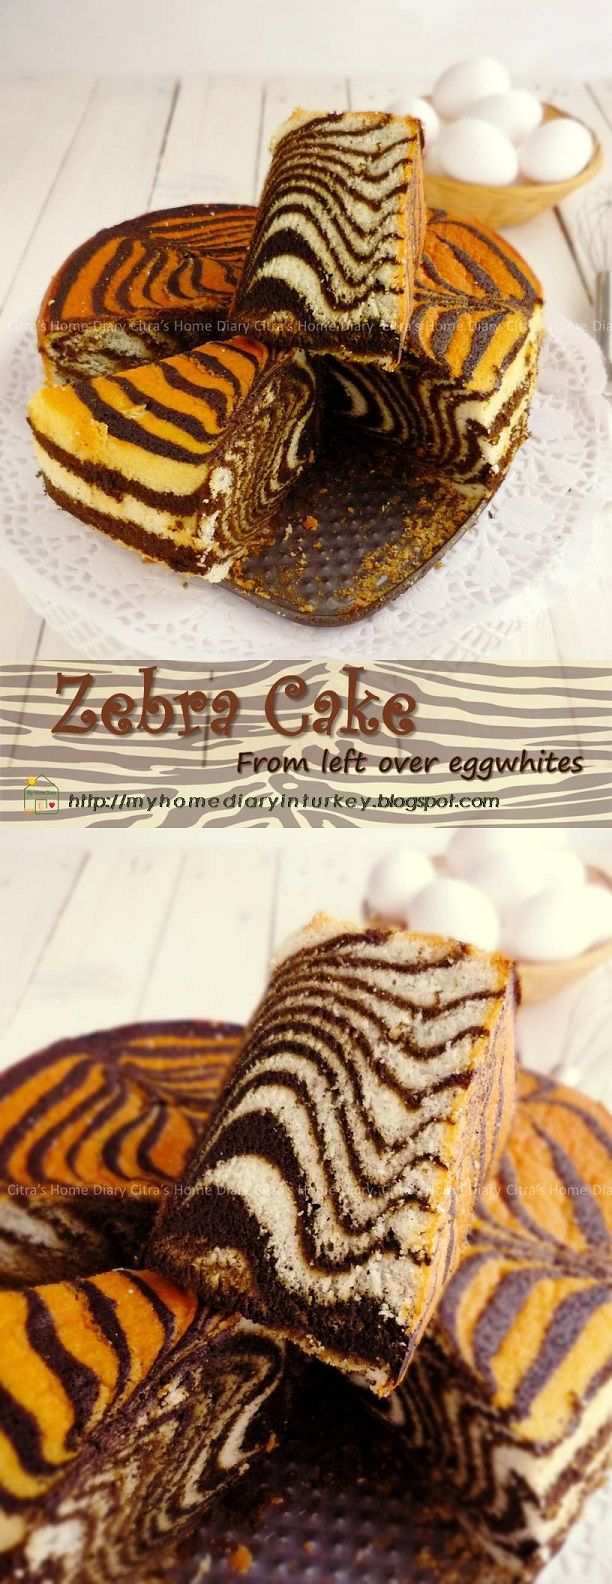 1000 Ideas About Zebra Cakes On Pinterest Cakes Zebra